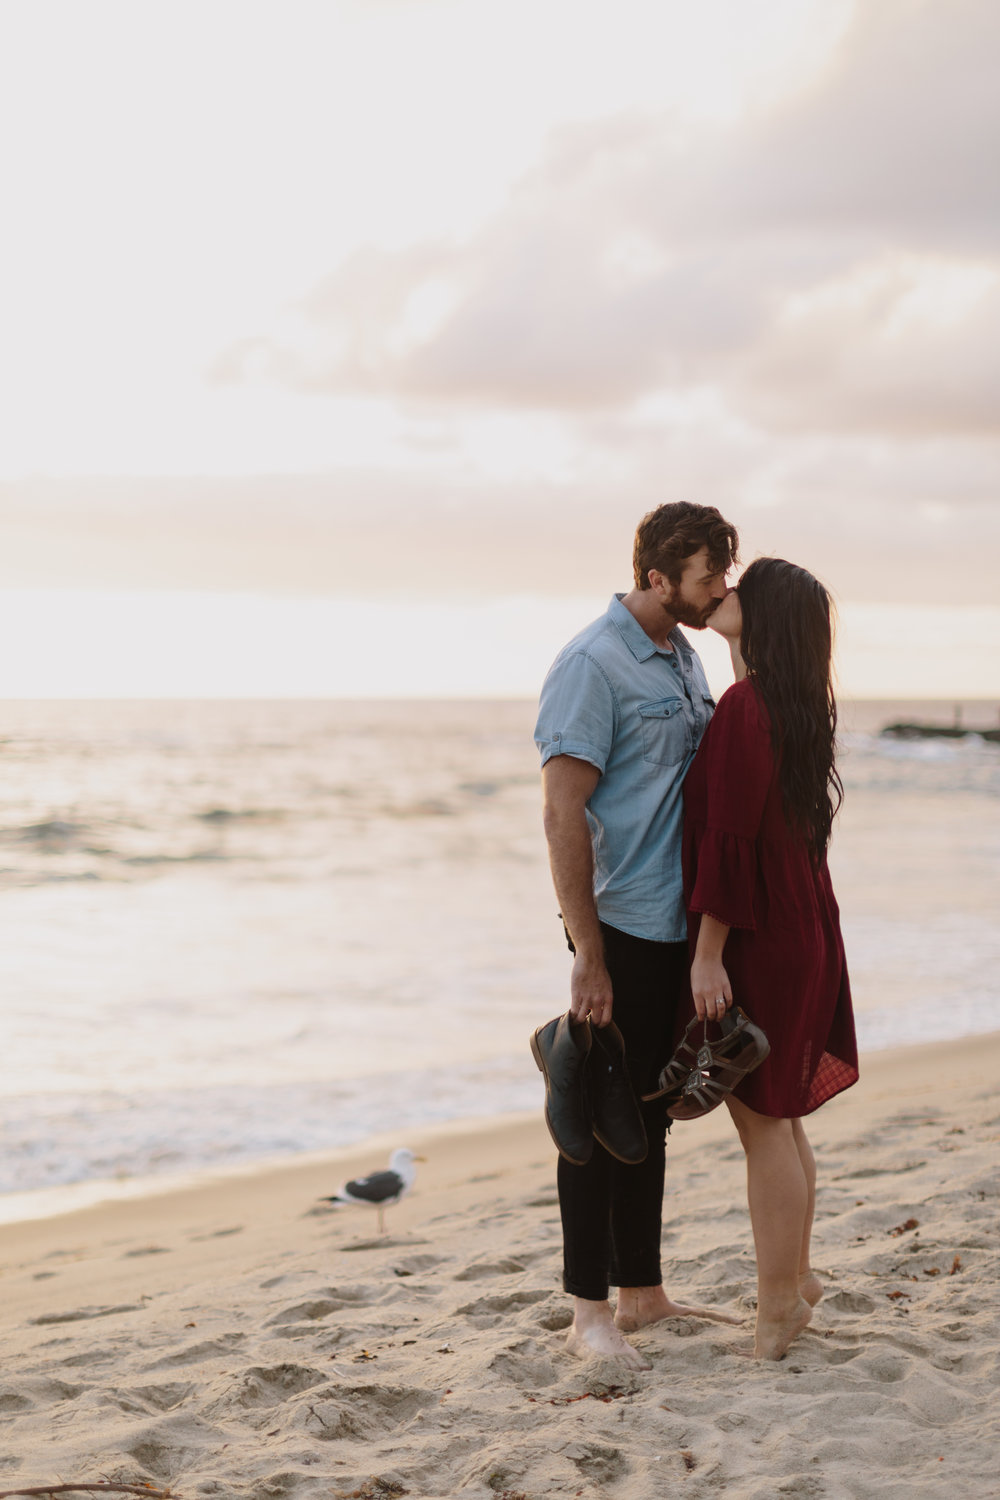 alyssa barletter photography laguna beach california anniversary engagement wedding photographer sunset-15.jpg